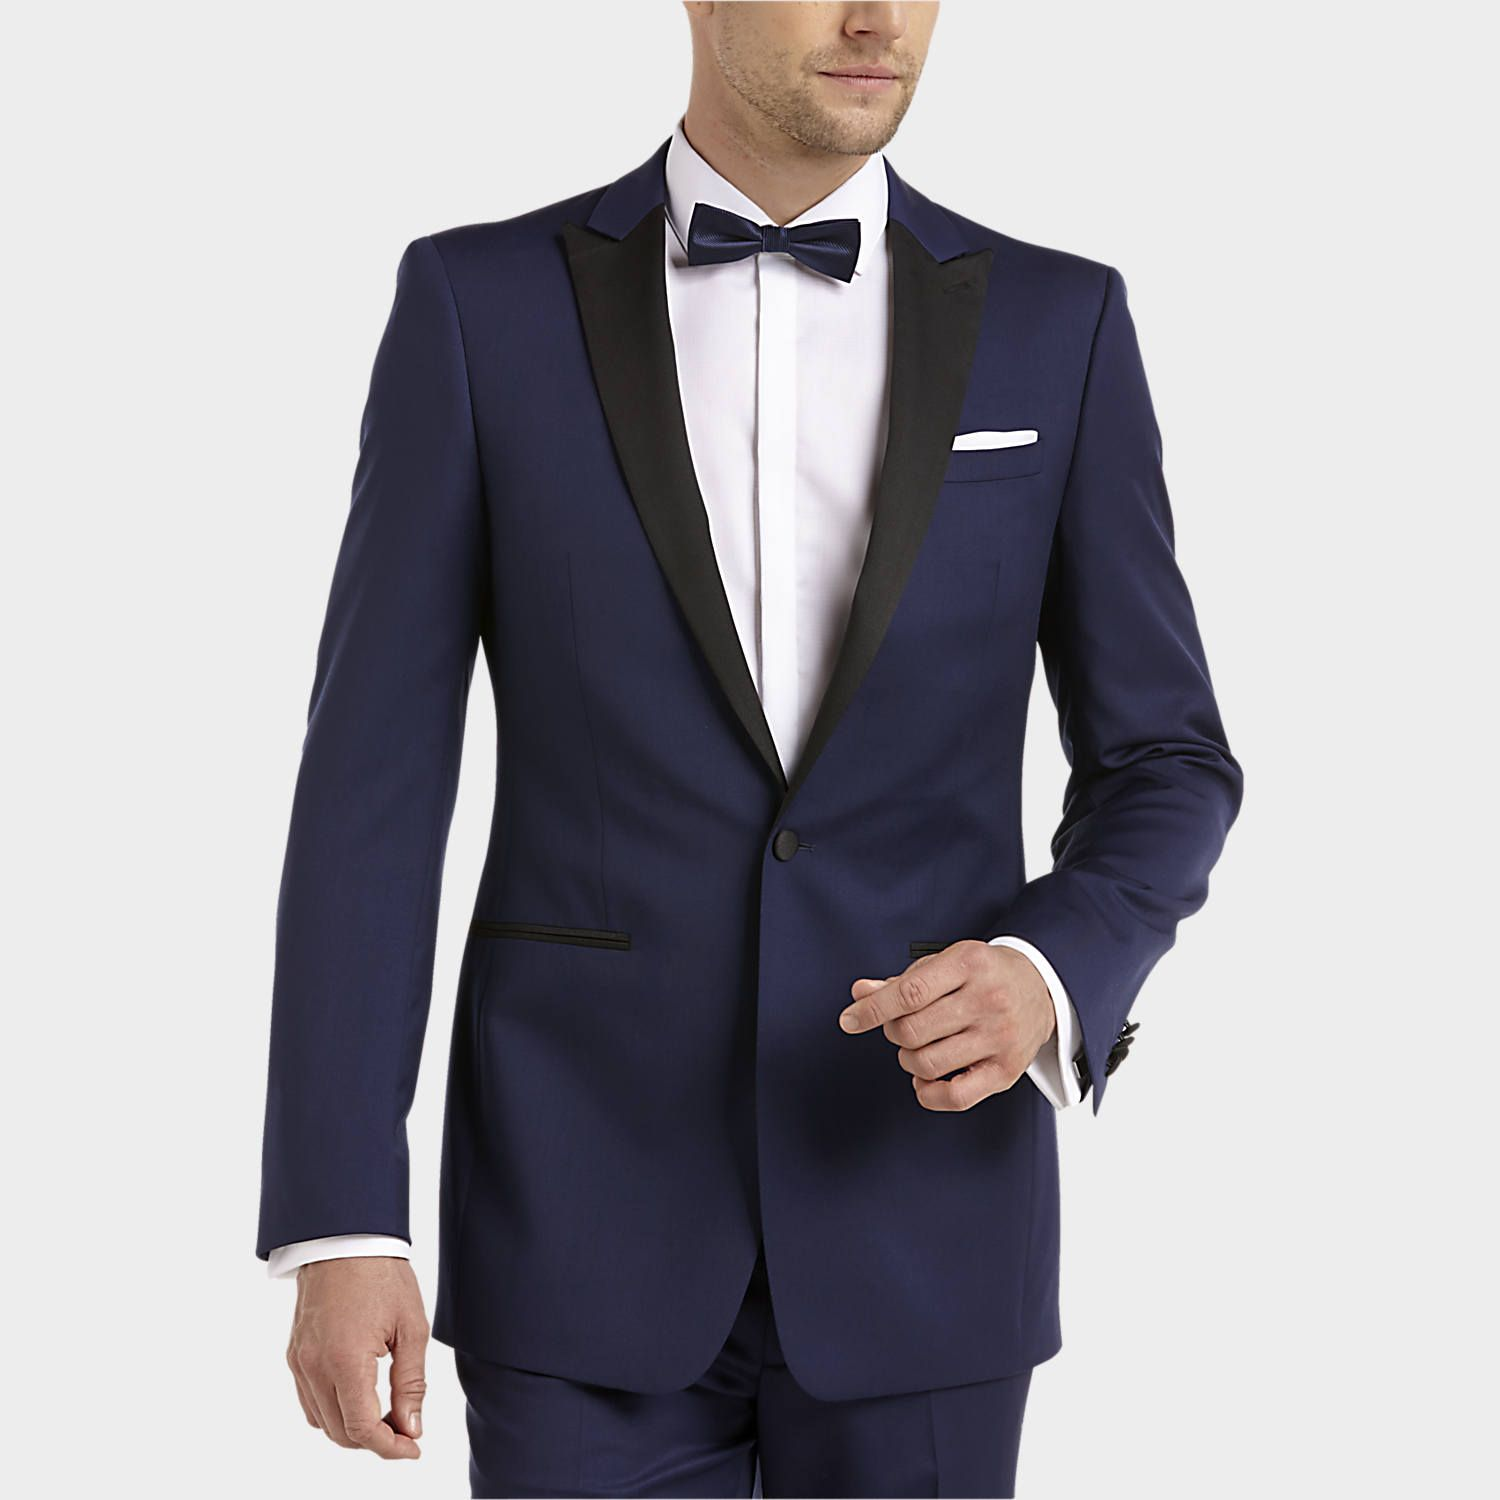 Calvin Klein Blue & Black Extreme Slim Fit Tuxedo - Extreme Slim ...